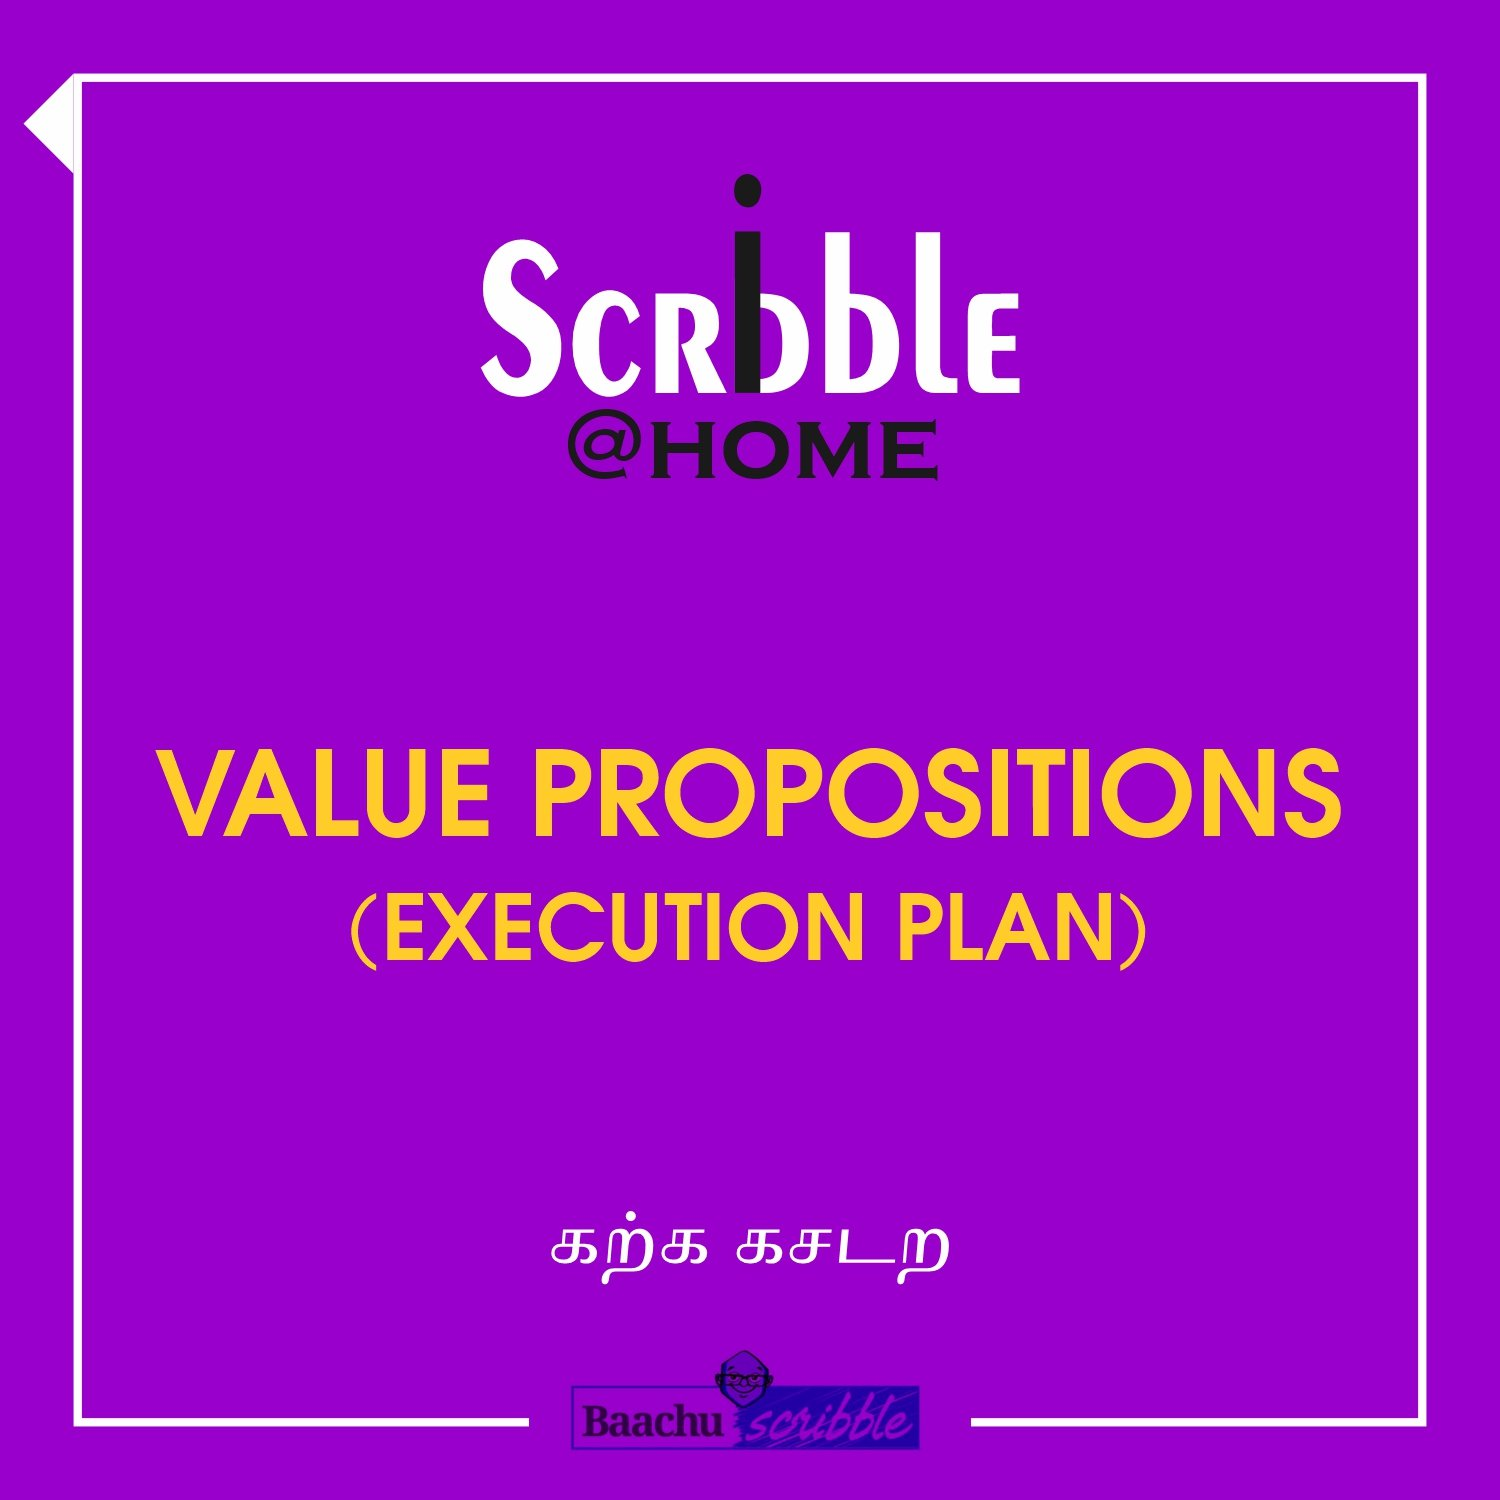 Value Propositions (Execution Plan)